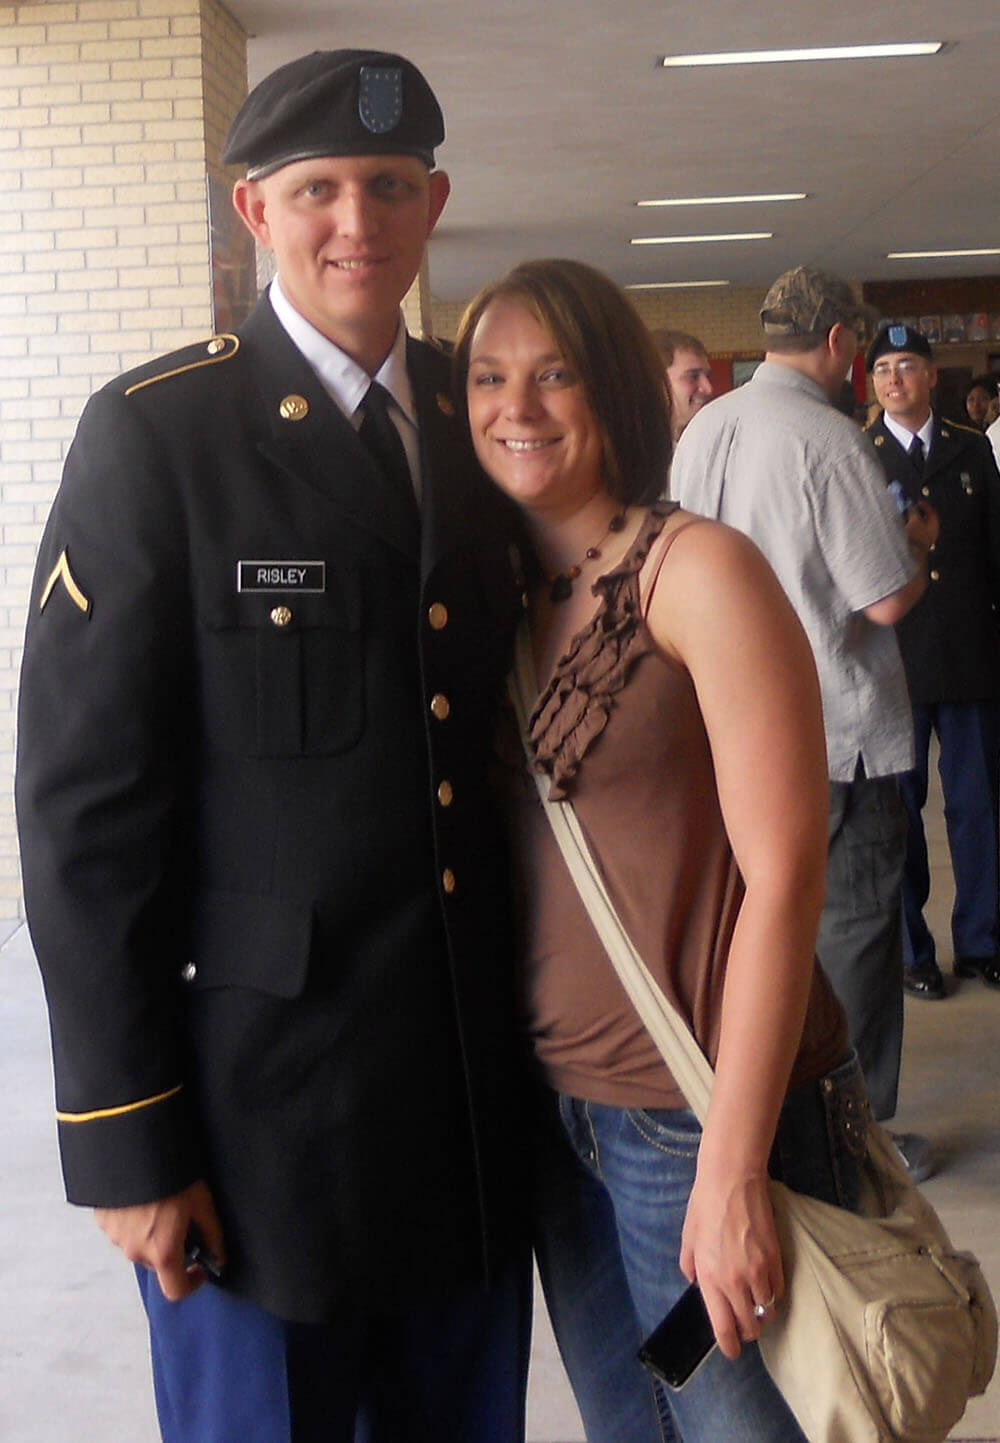 AIT graduation with his fiance